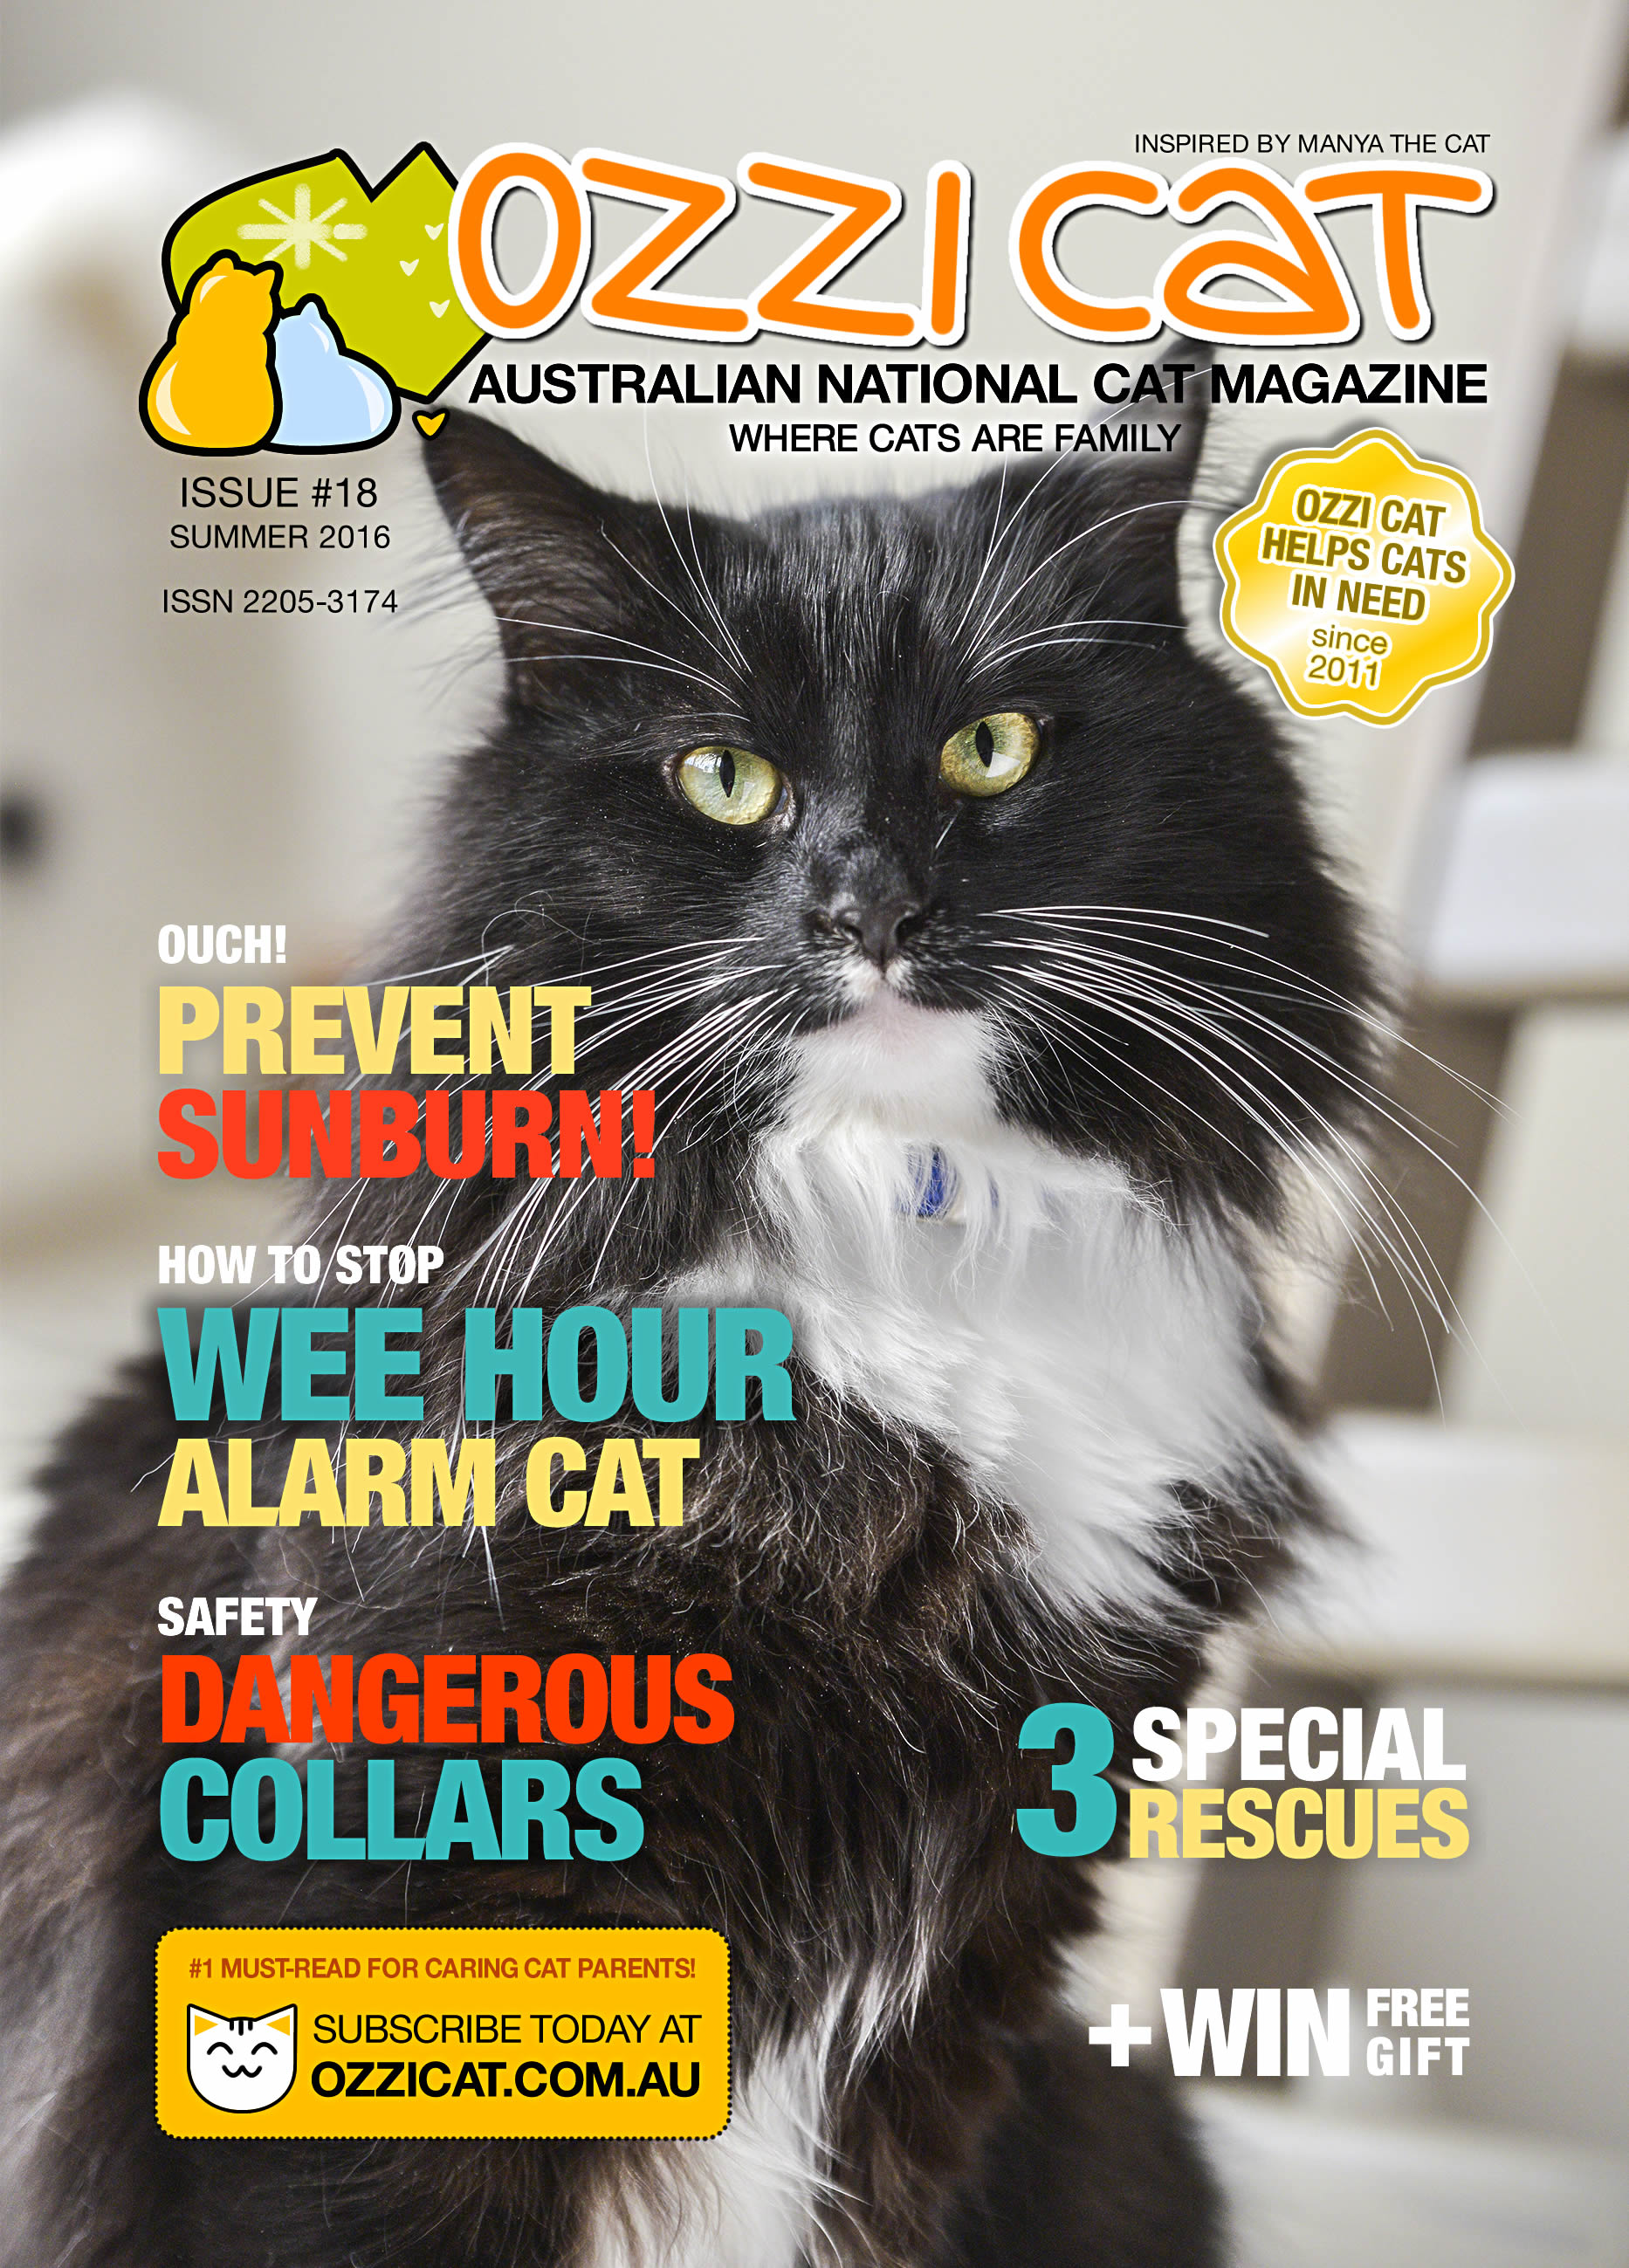 Ozzi Cat - Australian National Cat Magazine - Issue 18 - SUMMER 2016